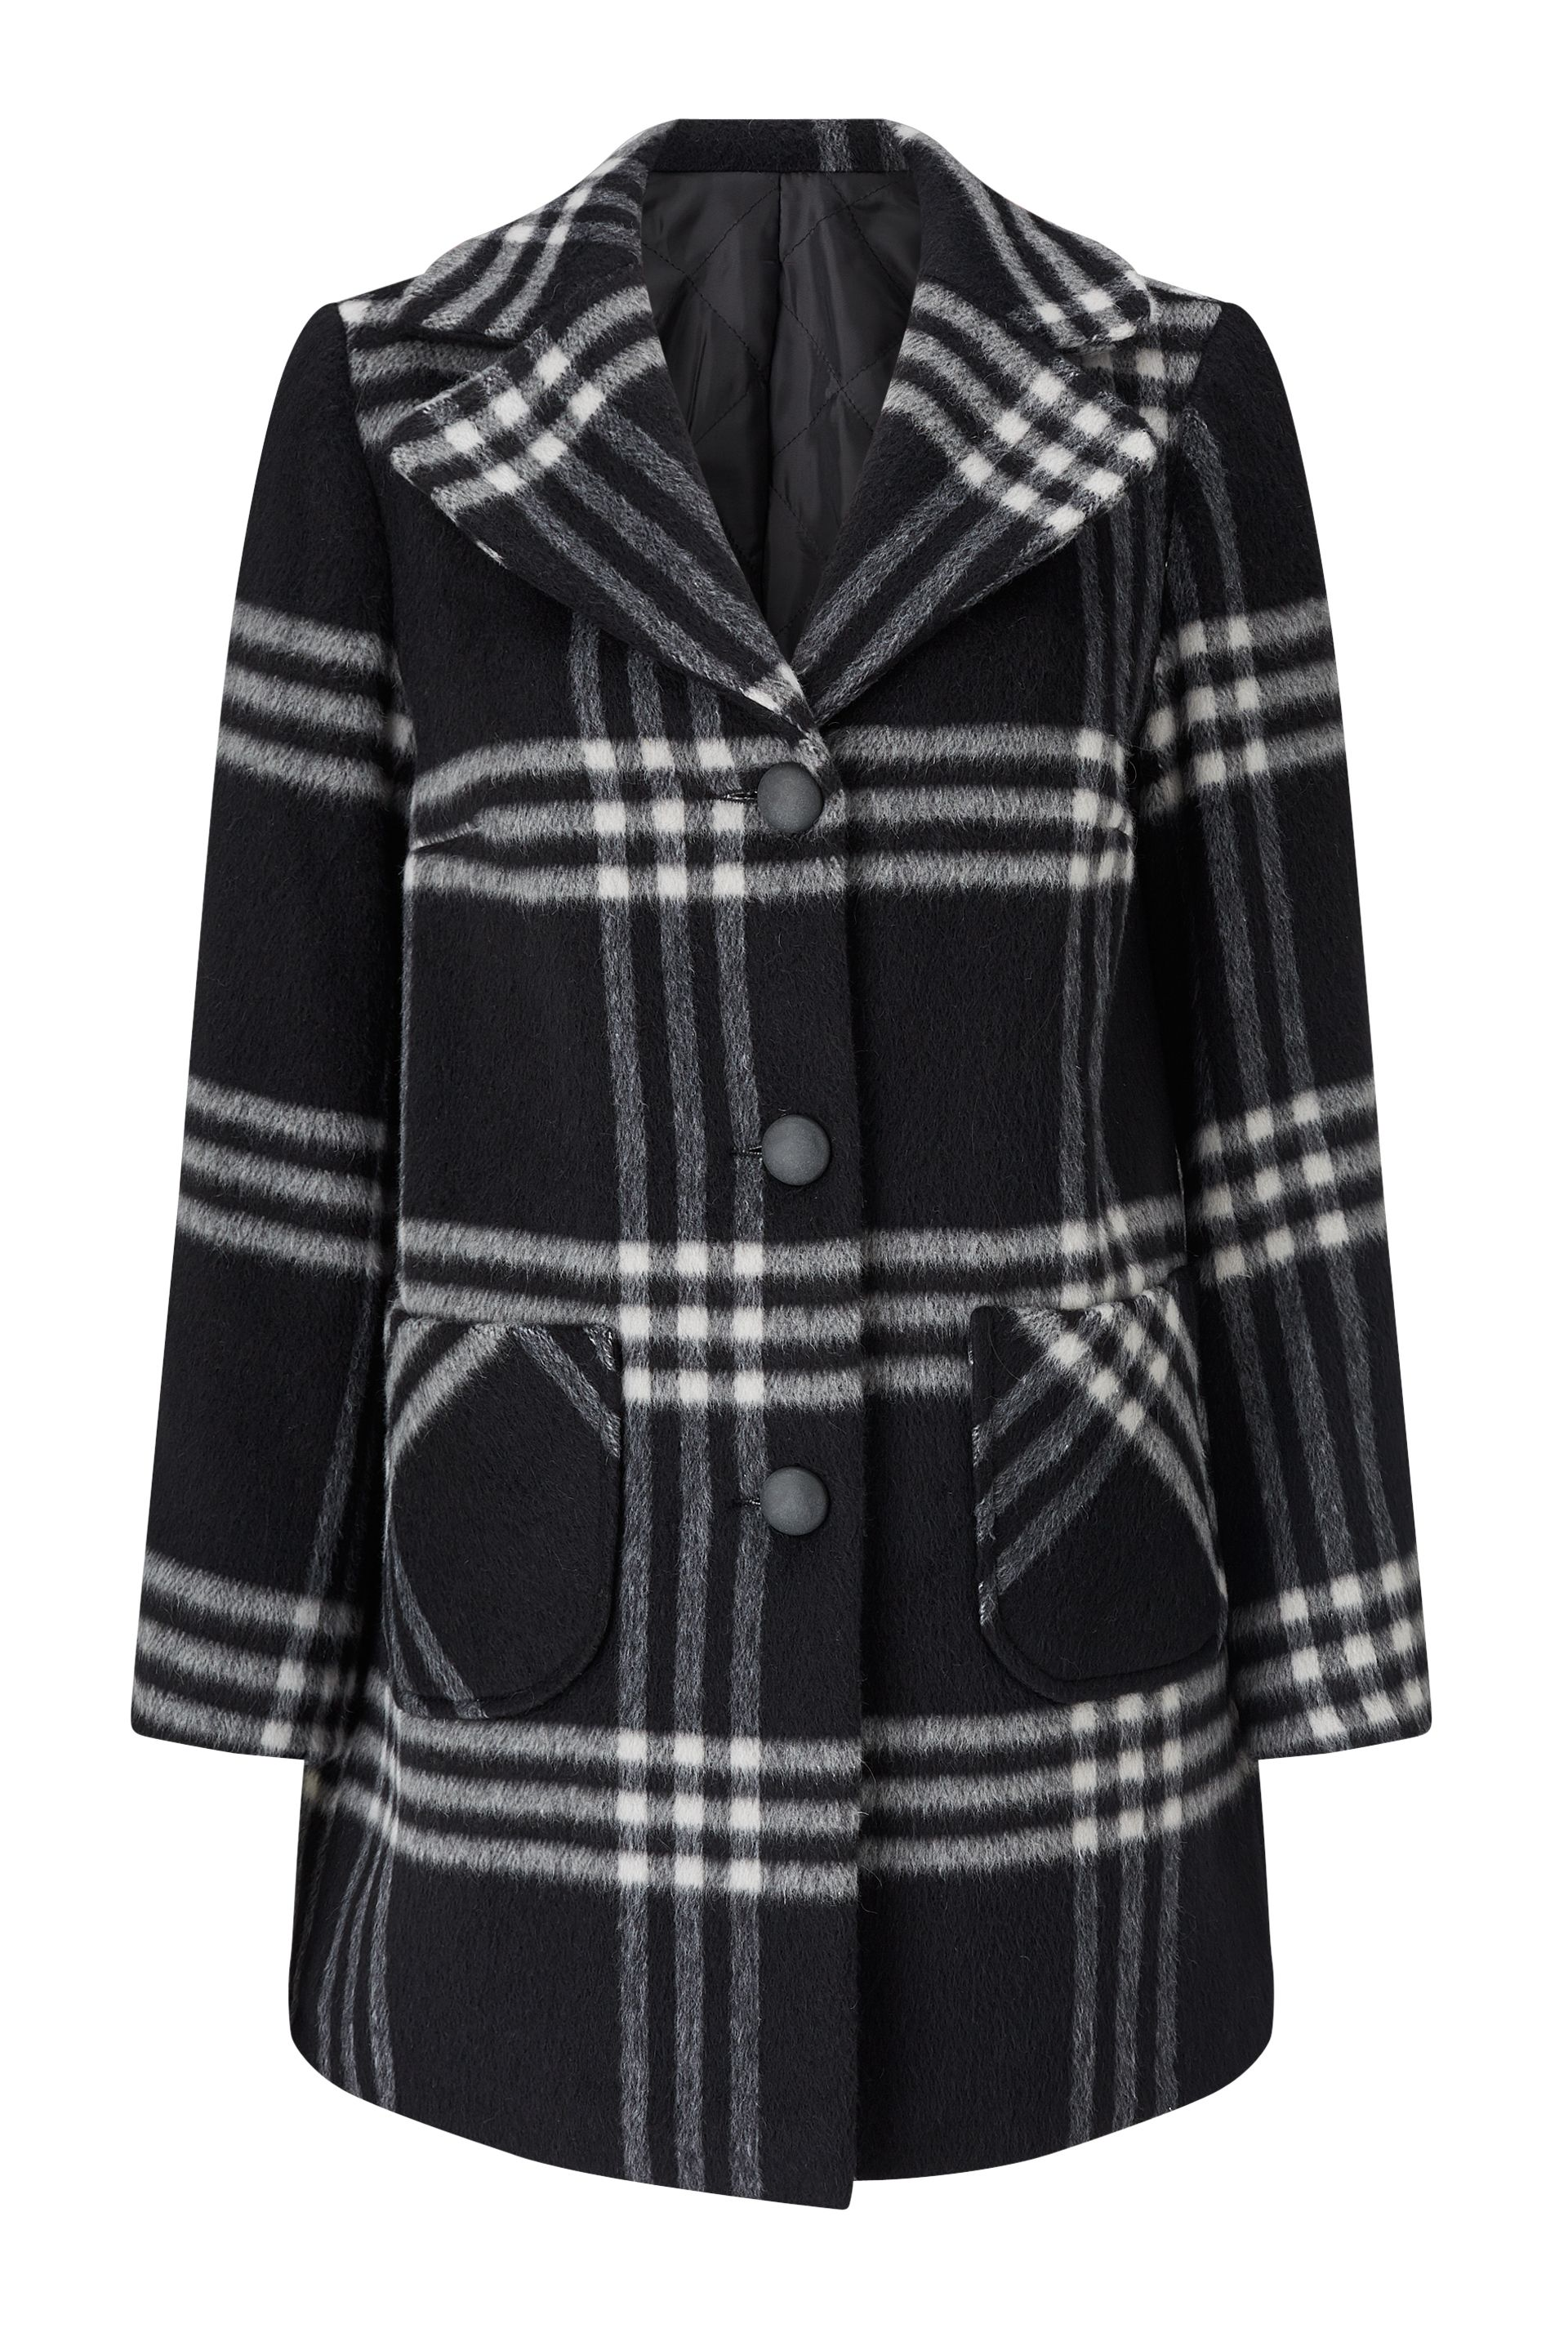 James Lakeland Check Wool Coat, Multi-Coloured